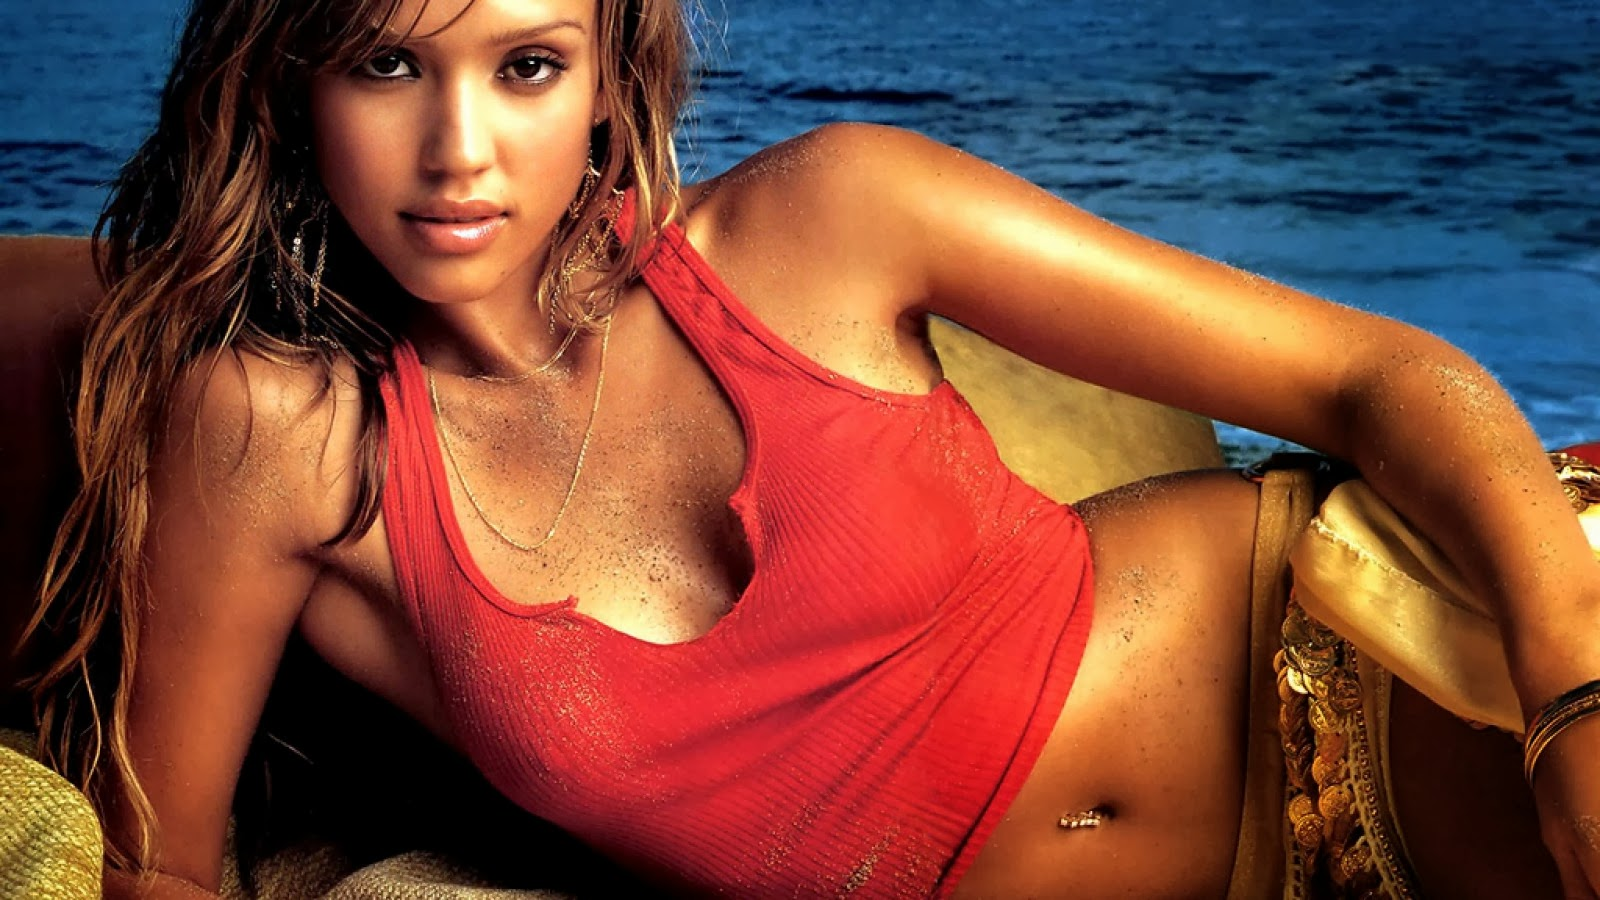 Jessica alba good luck chuck slomo